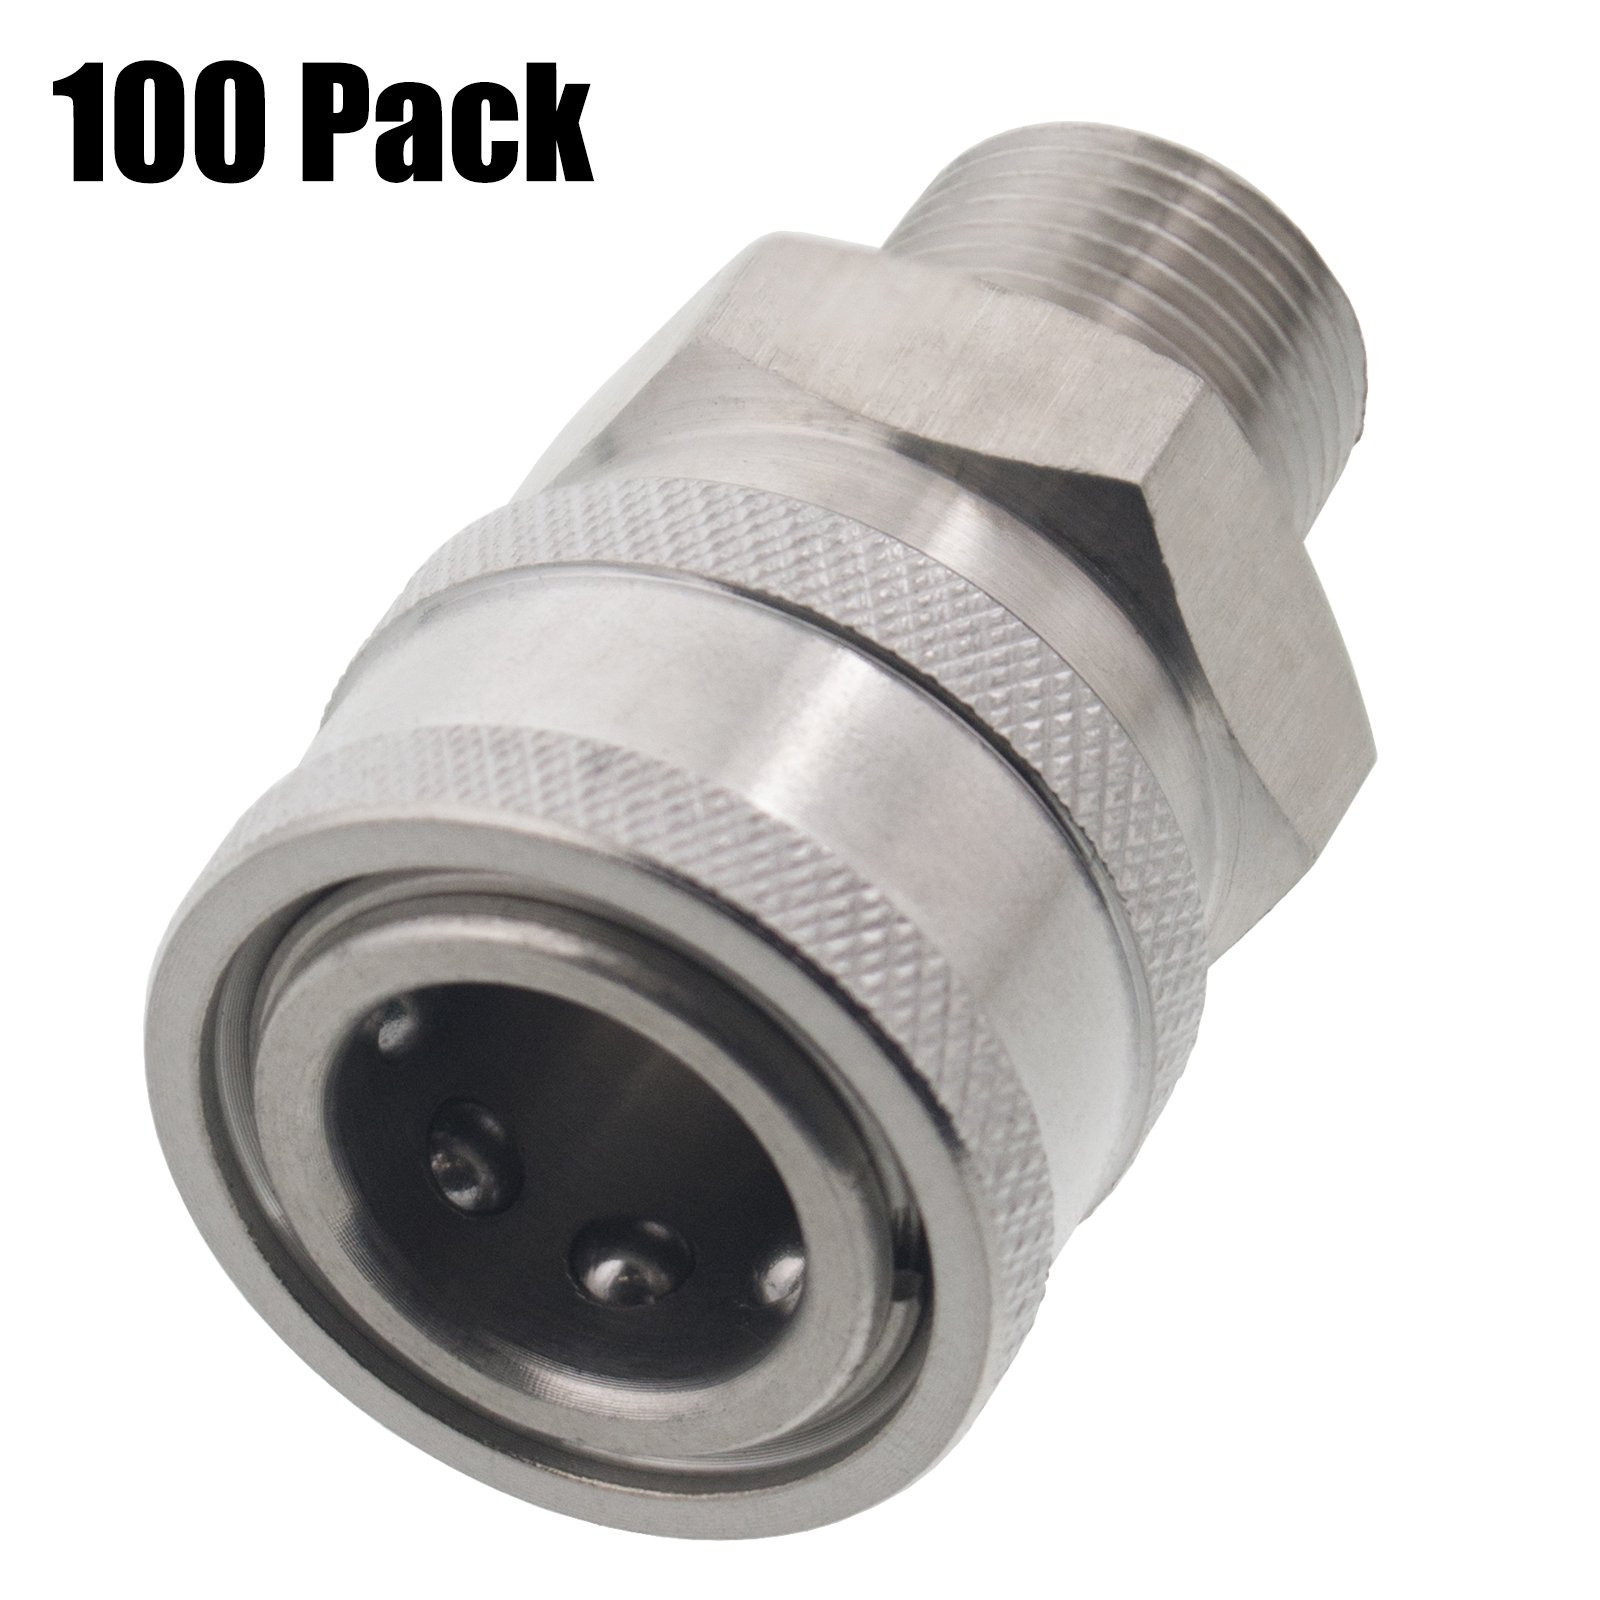 100 Pack of Erie Tools 3/8'' MPT Male Stainless Steel Socket Quick Connect Coupler 5000 PSI 10 GPM for Pressure Washer Nozzle Gun Hose Wand by Erie Tools (Image #1)